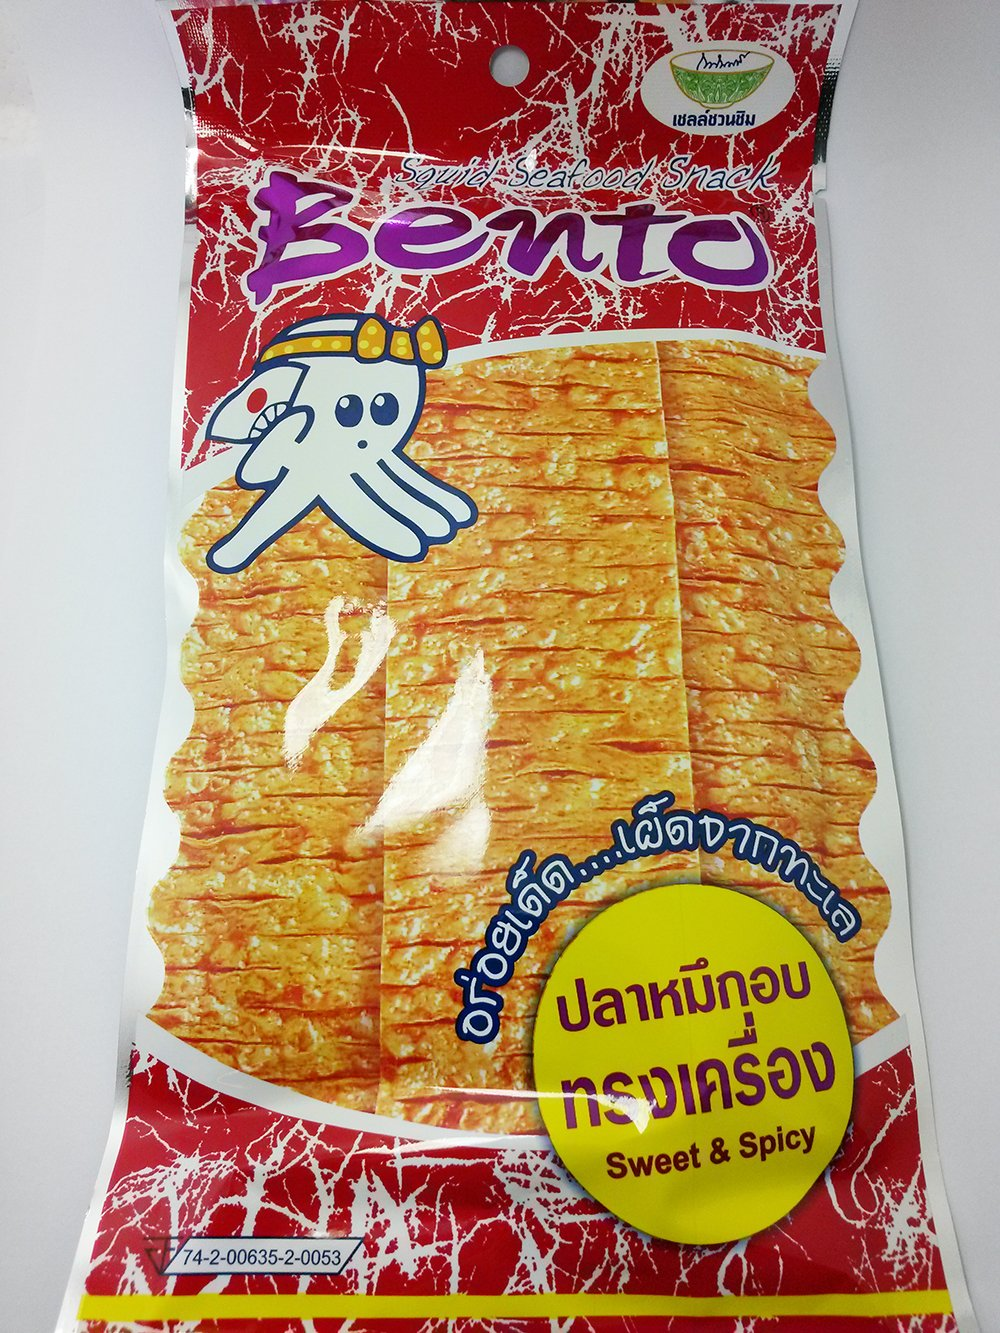 Bento Squid Seafood Snack - Sweet and Spicy Flavoured - Dried Squid with Surimi Big Pack